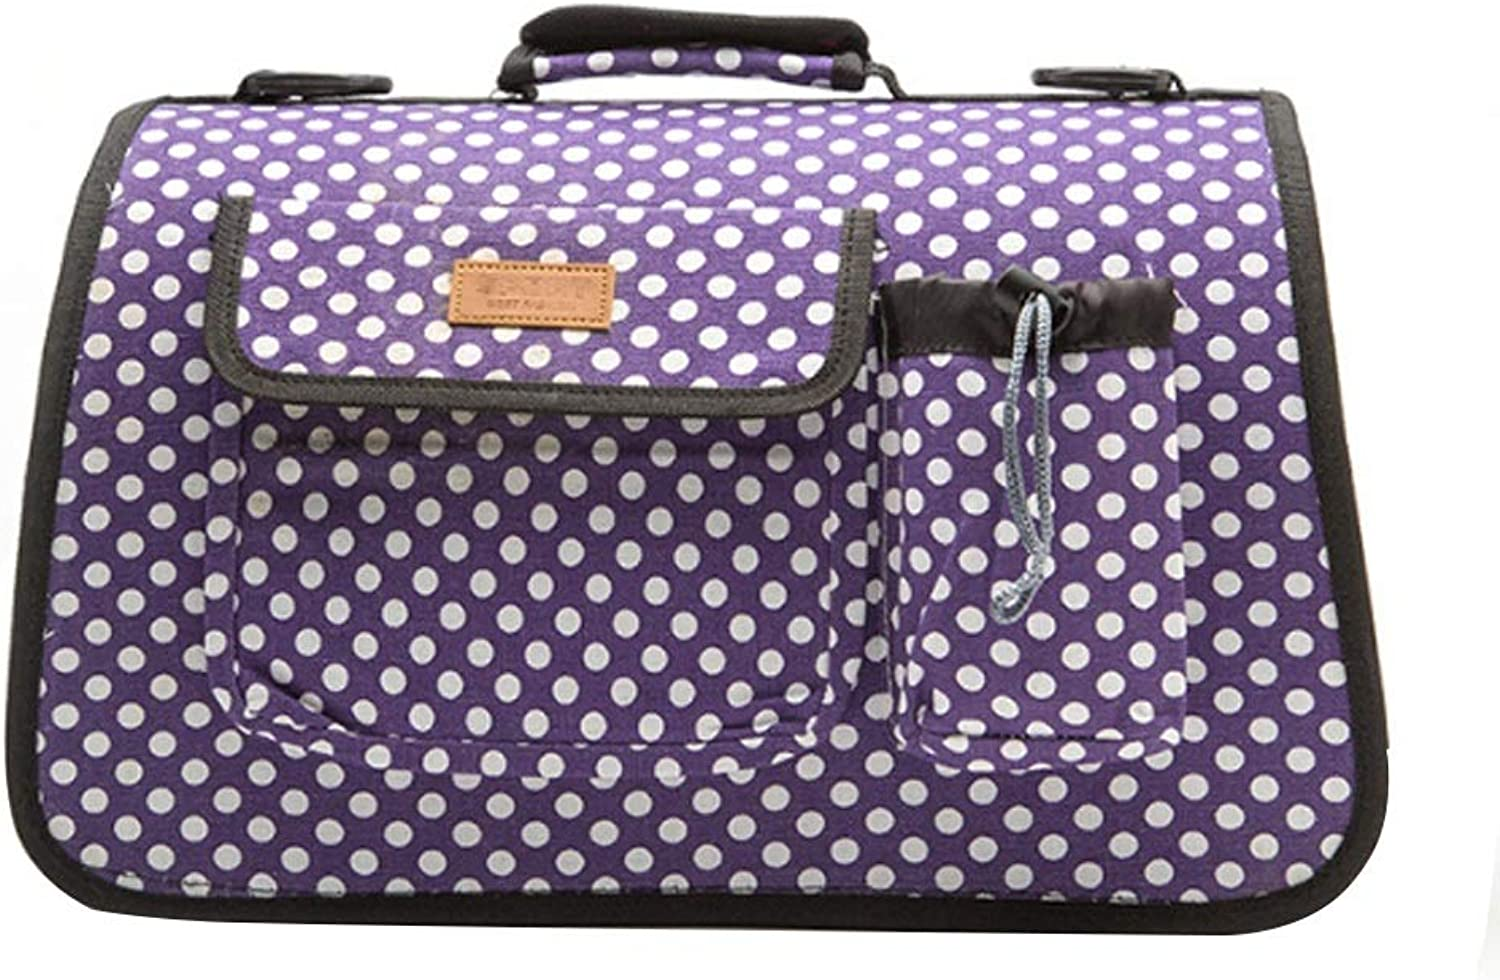 GWM Pet Backpacks Pet Supplies Small Dog Out Pack Portable Adjustable Tote Bag (Purple) 53  23  29cm (Size   S)